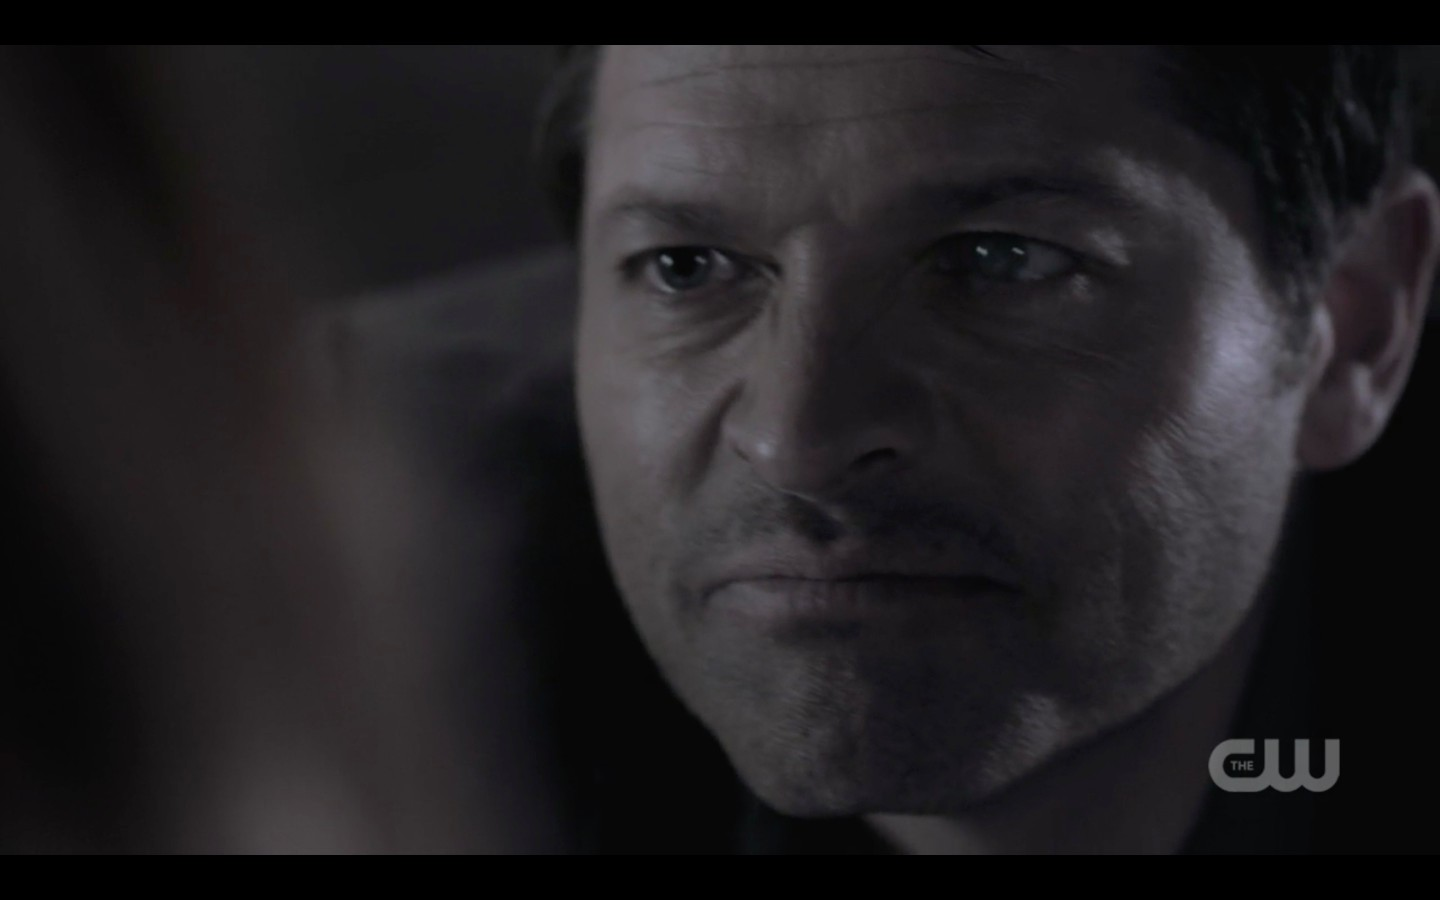 evil castiel faces off with misha collins supernatural 1322